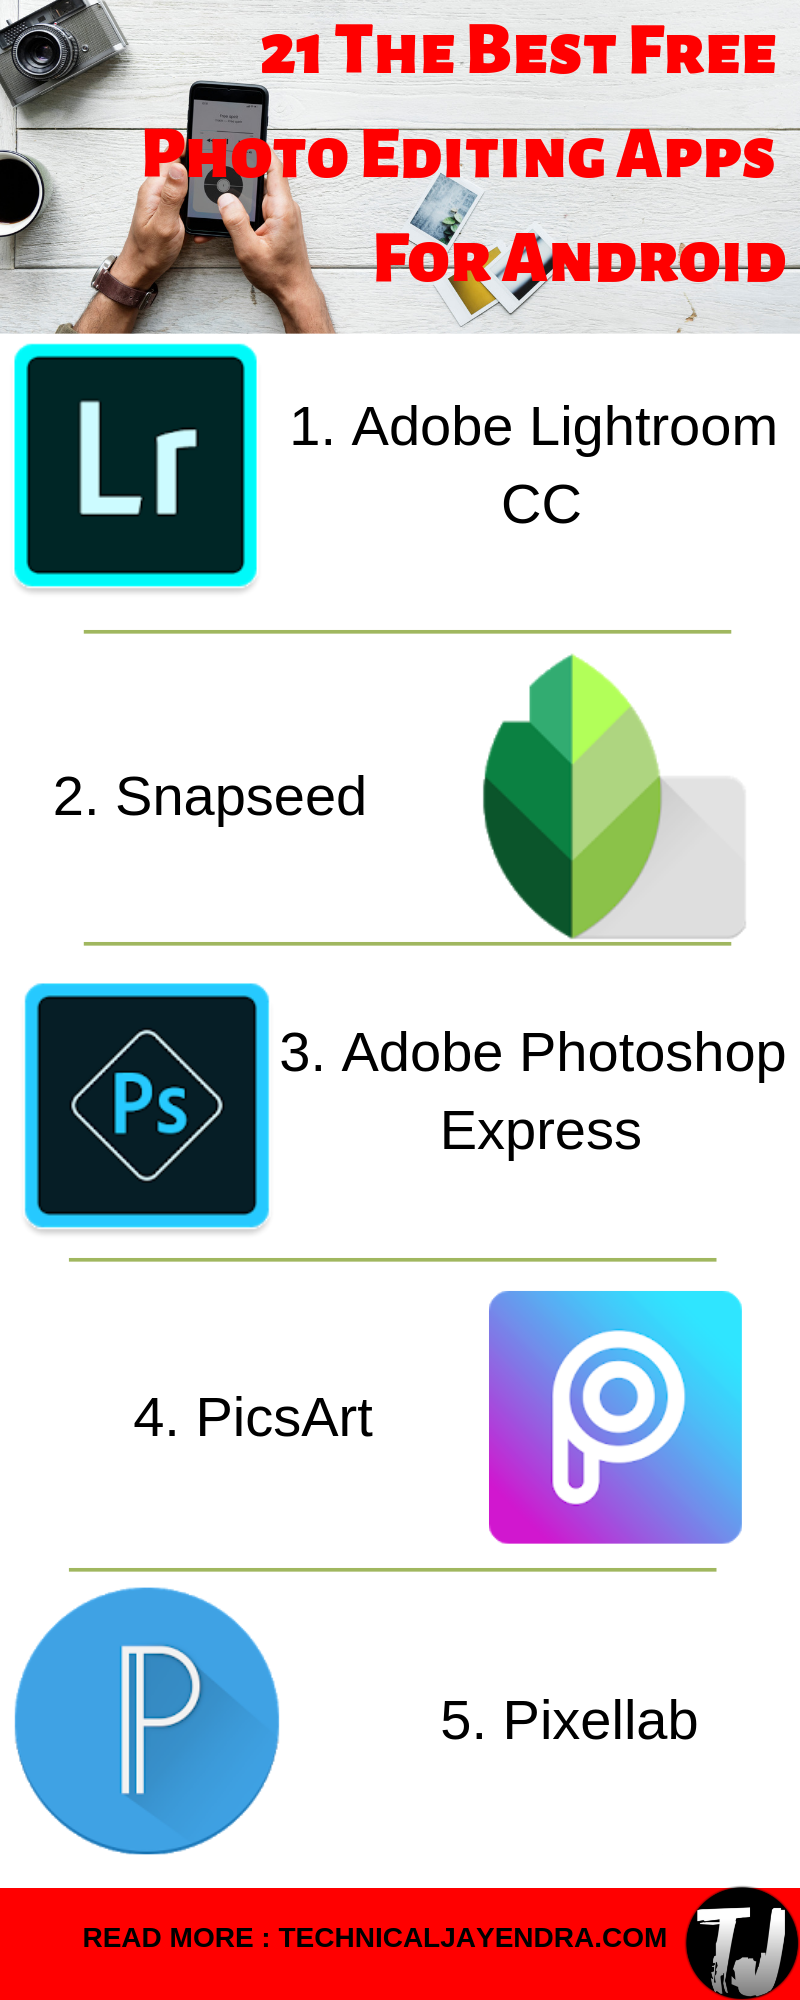 19 Best Photo Editing Apps For Android (2020) Photo